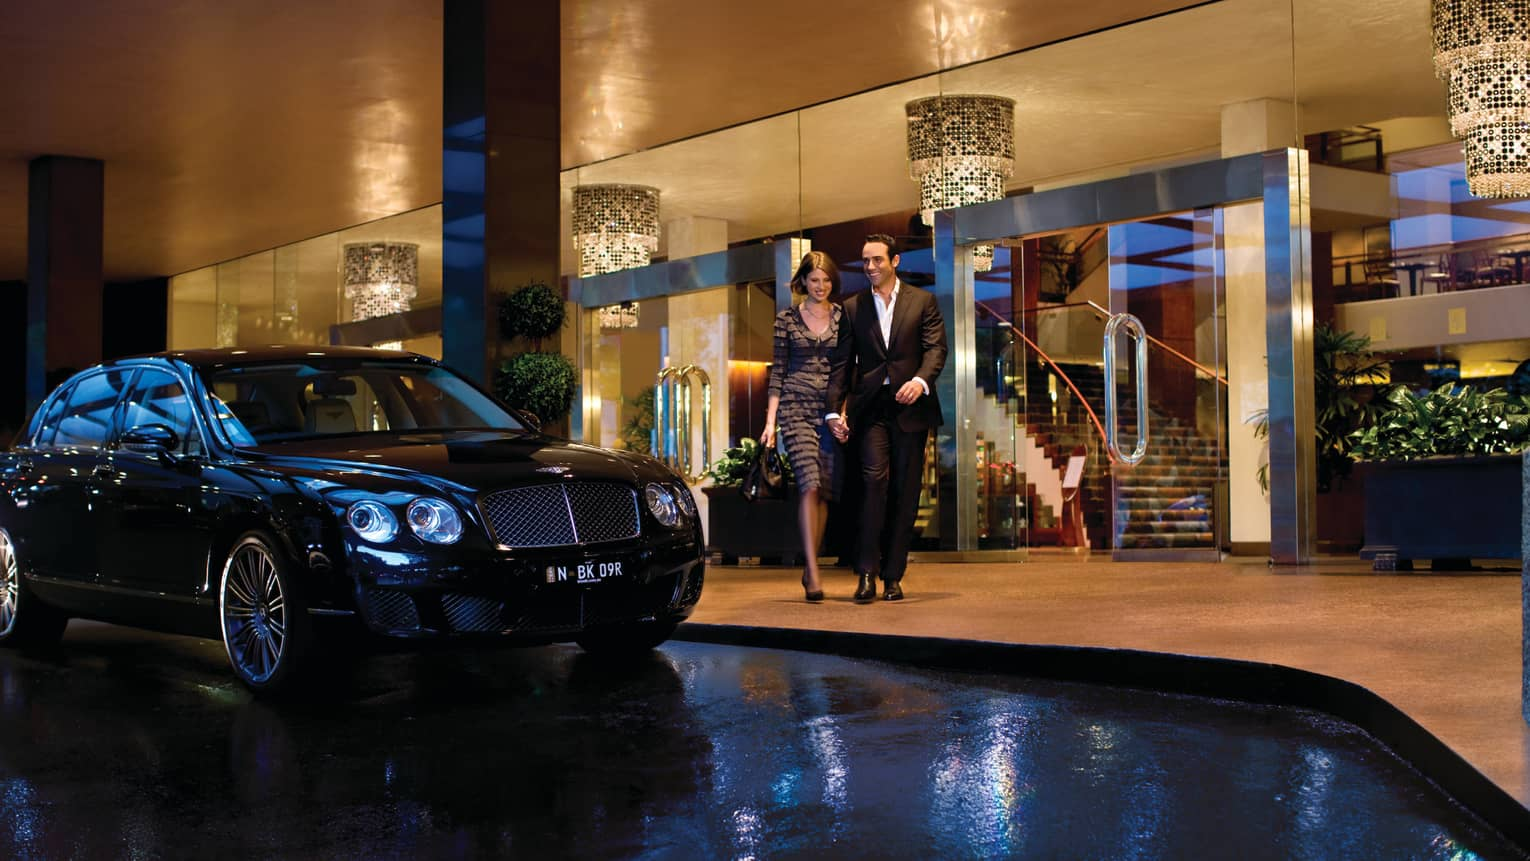 Man and woman walk arm-in-arm past luxury car, Four Seasons Hotel Sydney entrance